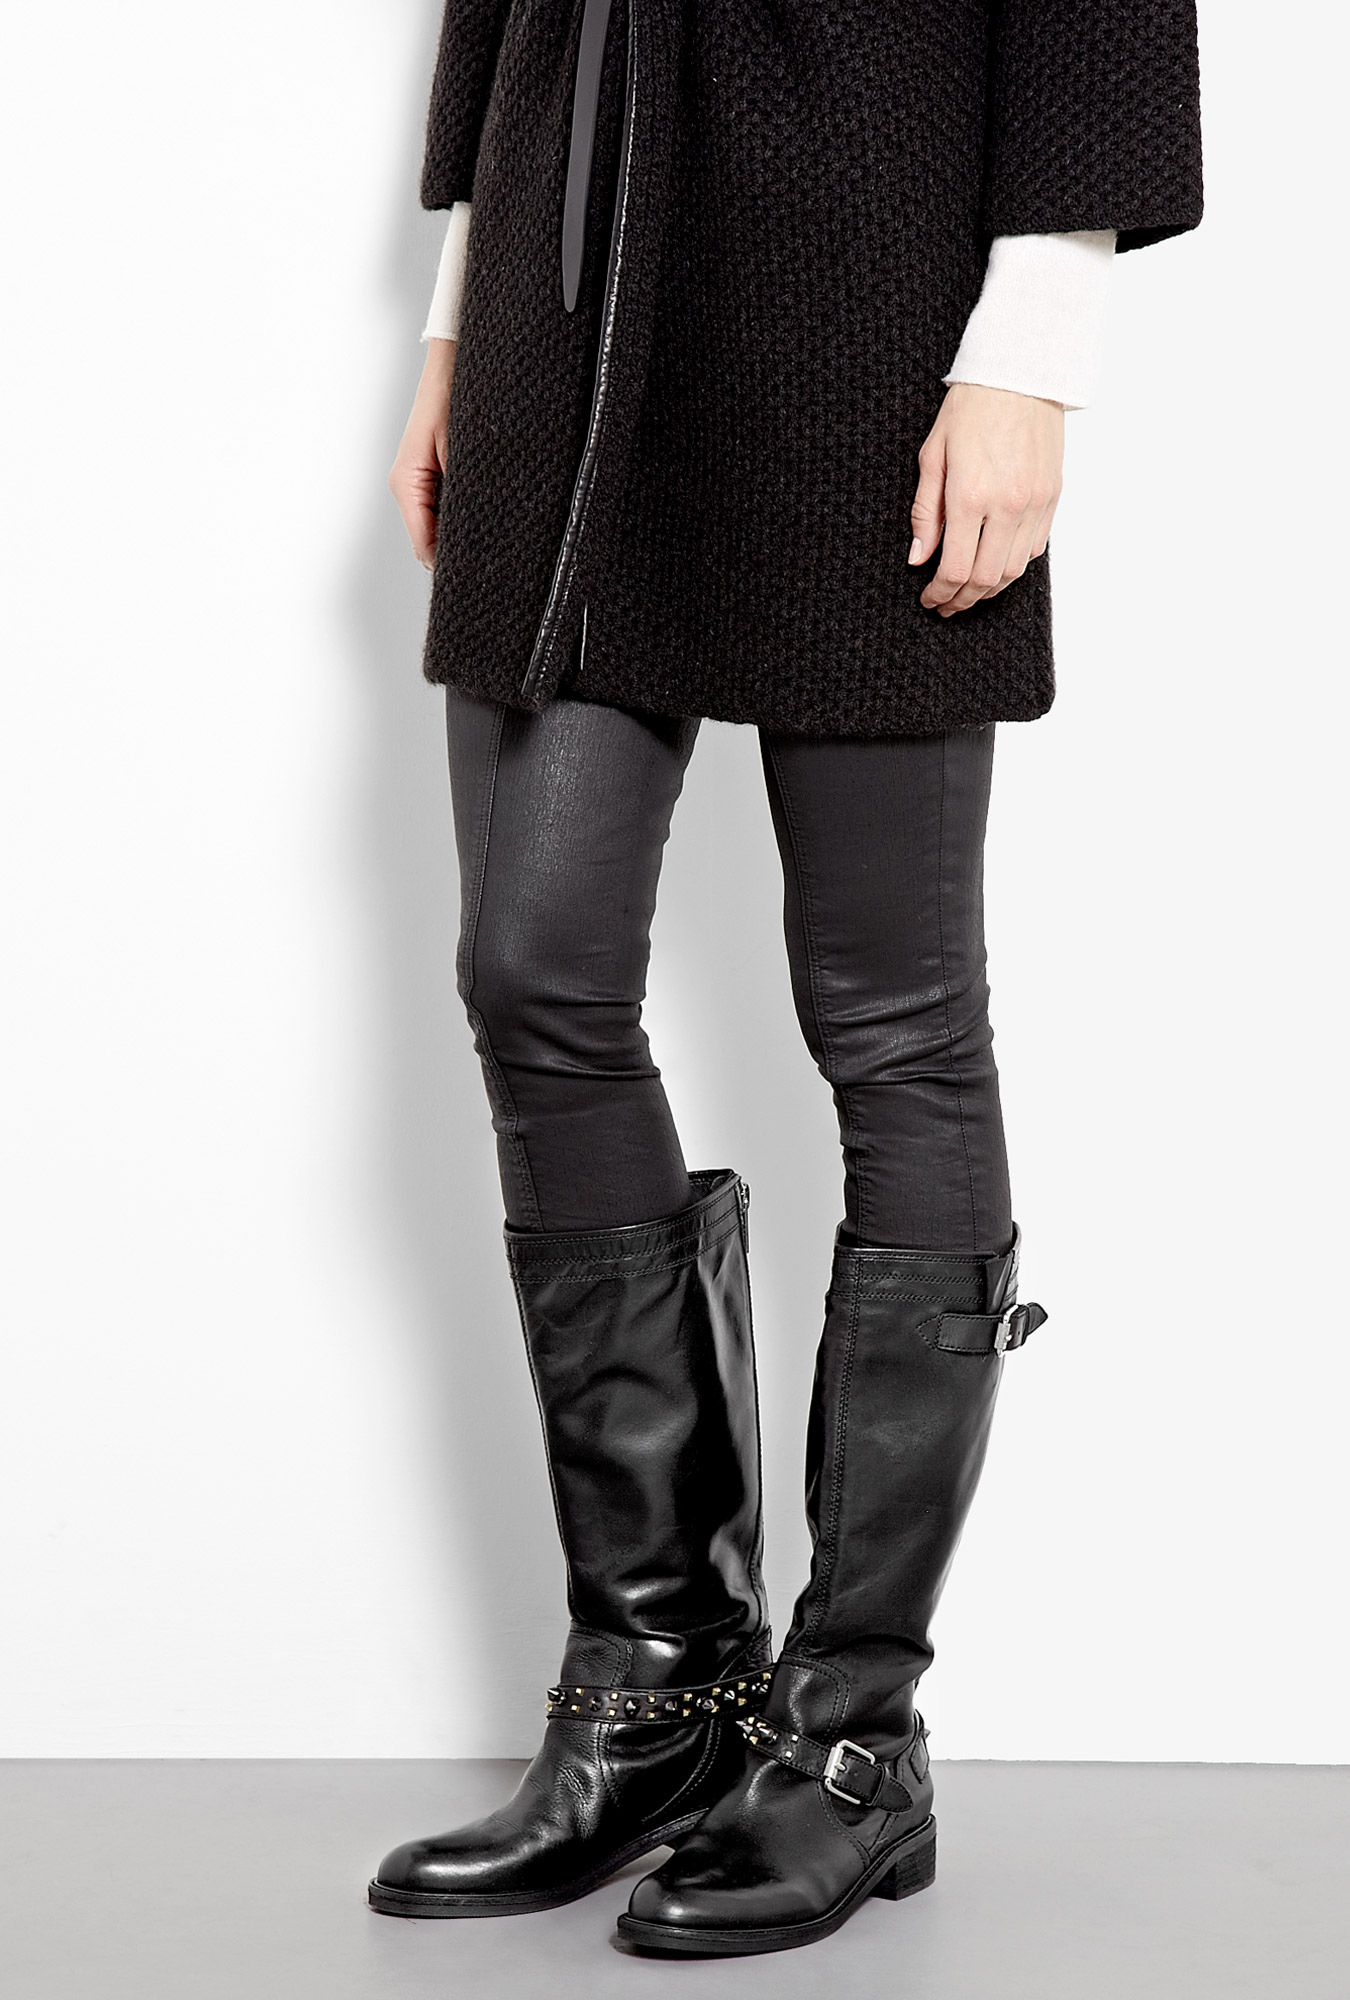 Shoeniverse On Sale Ashlyn Studded Knee High Biker Boots